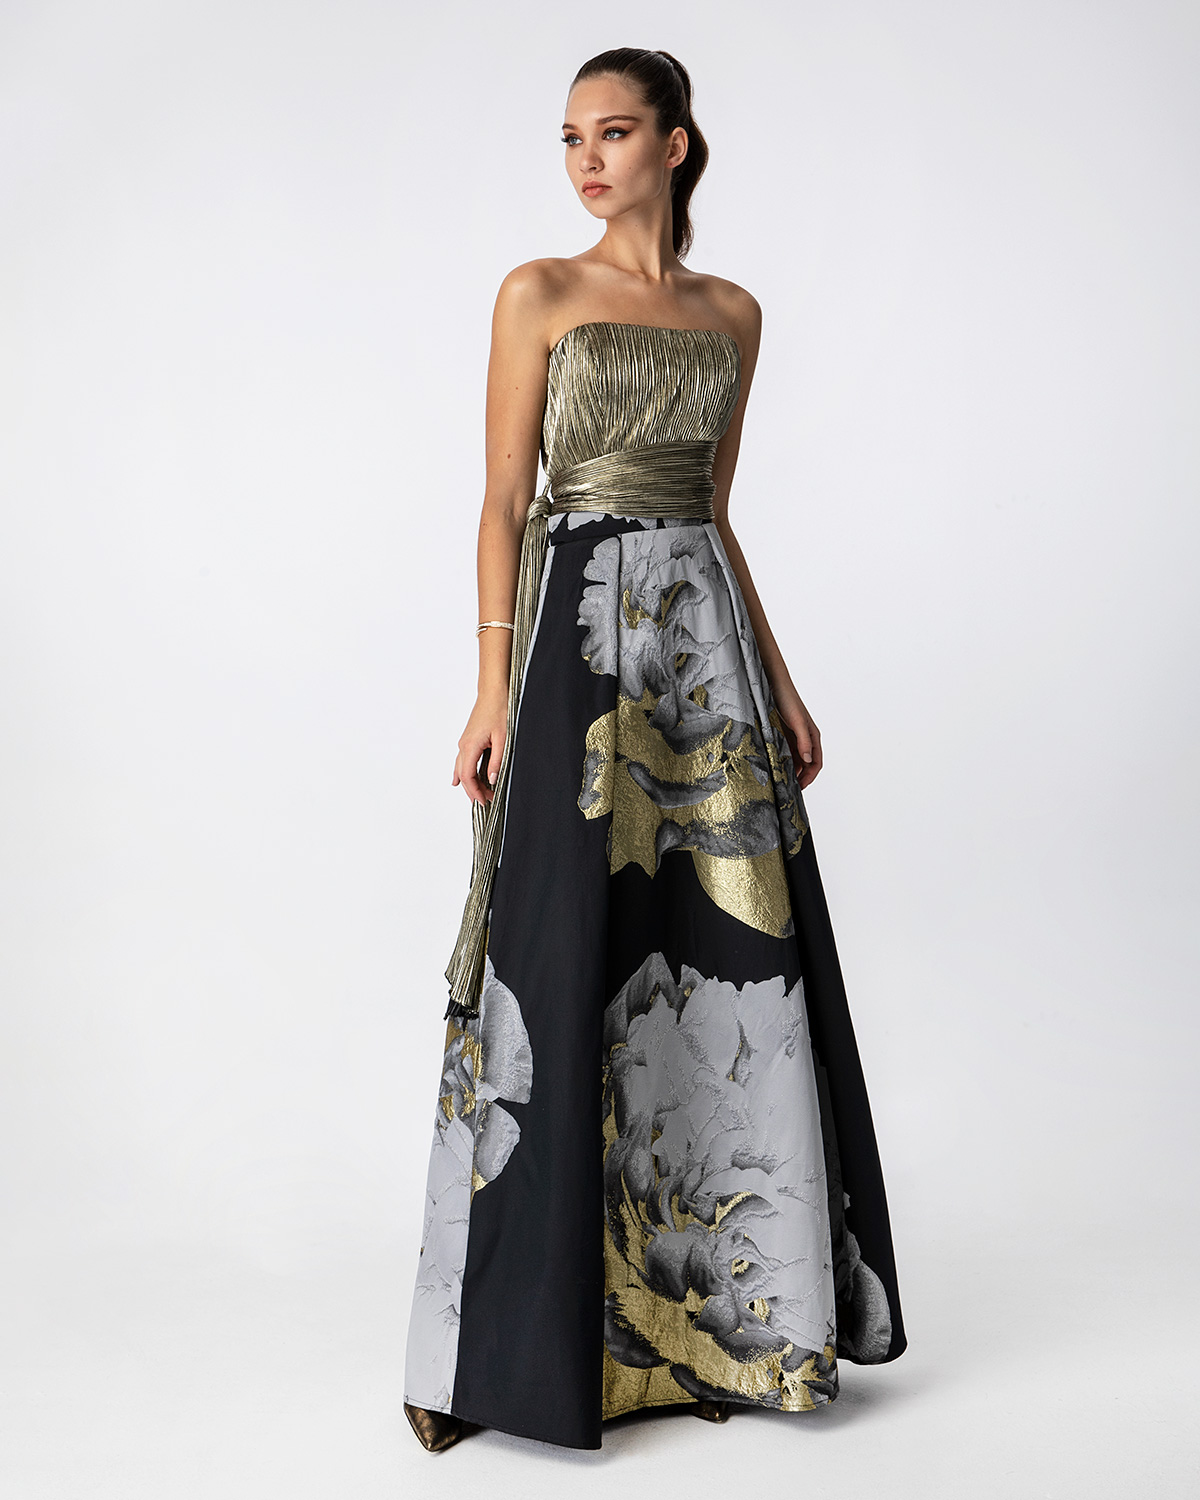 Cocktail Dresses / Long printed skirt with solid color lurex top